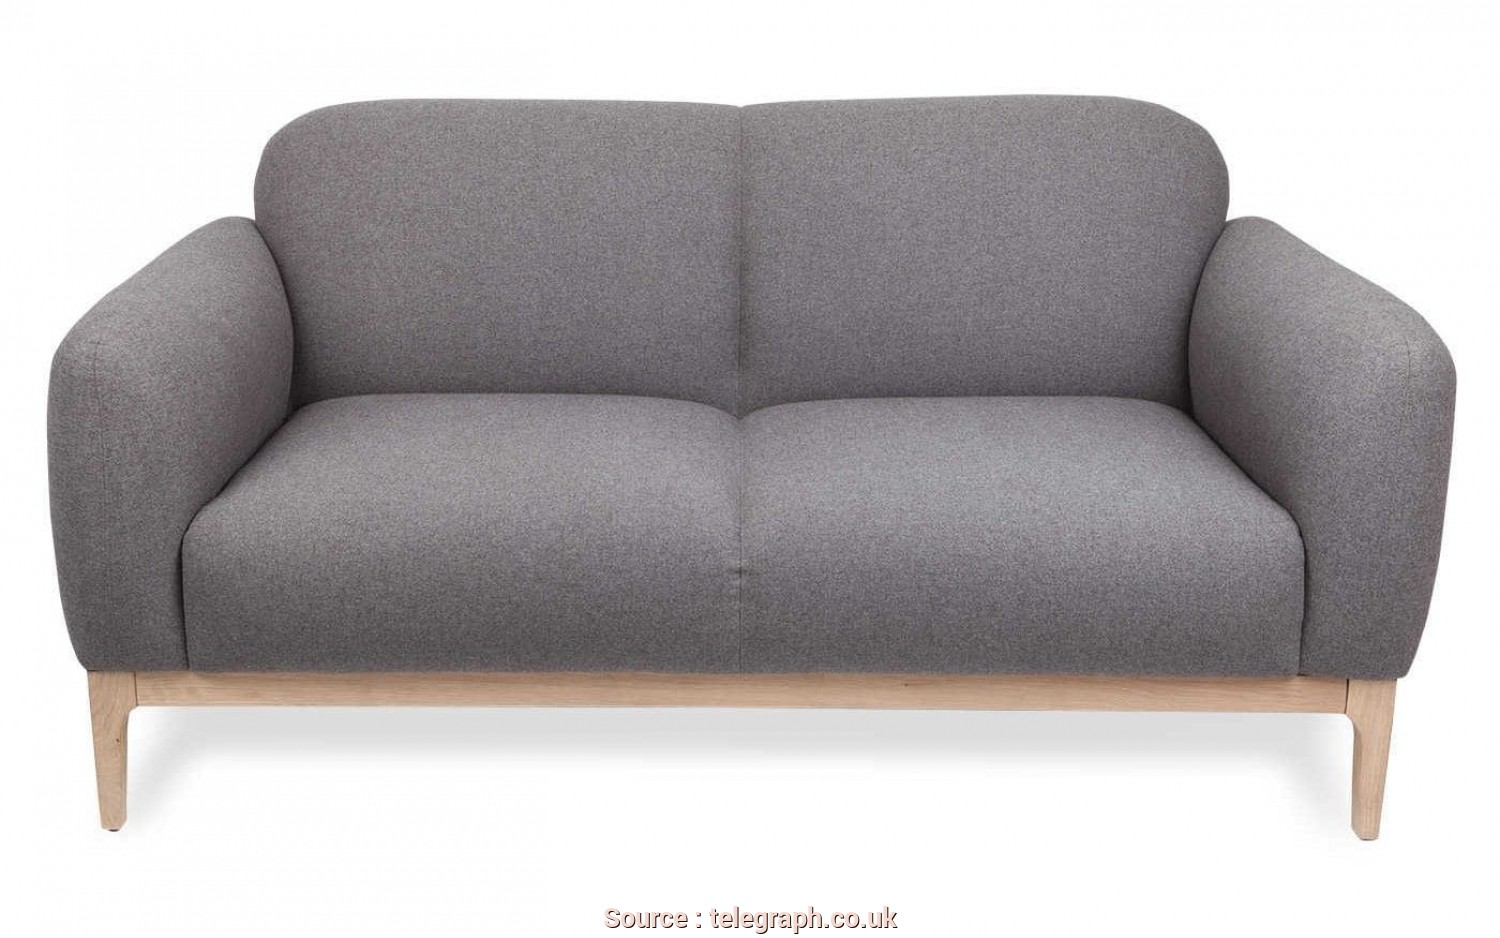 Ikea Klippan 2 Seater Sofa Review, Loveable 17 Of, Best Sofas, Couches To, For, Budgets